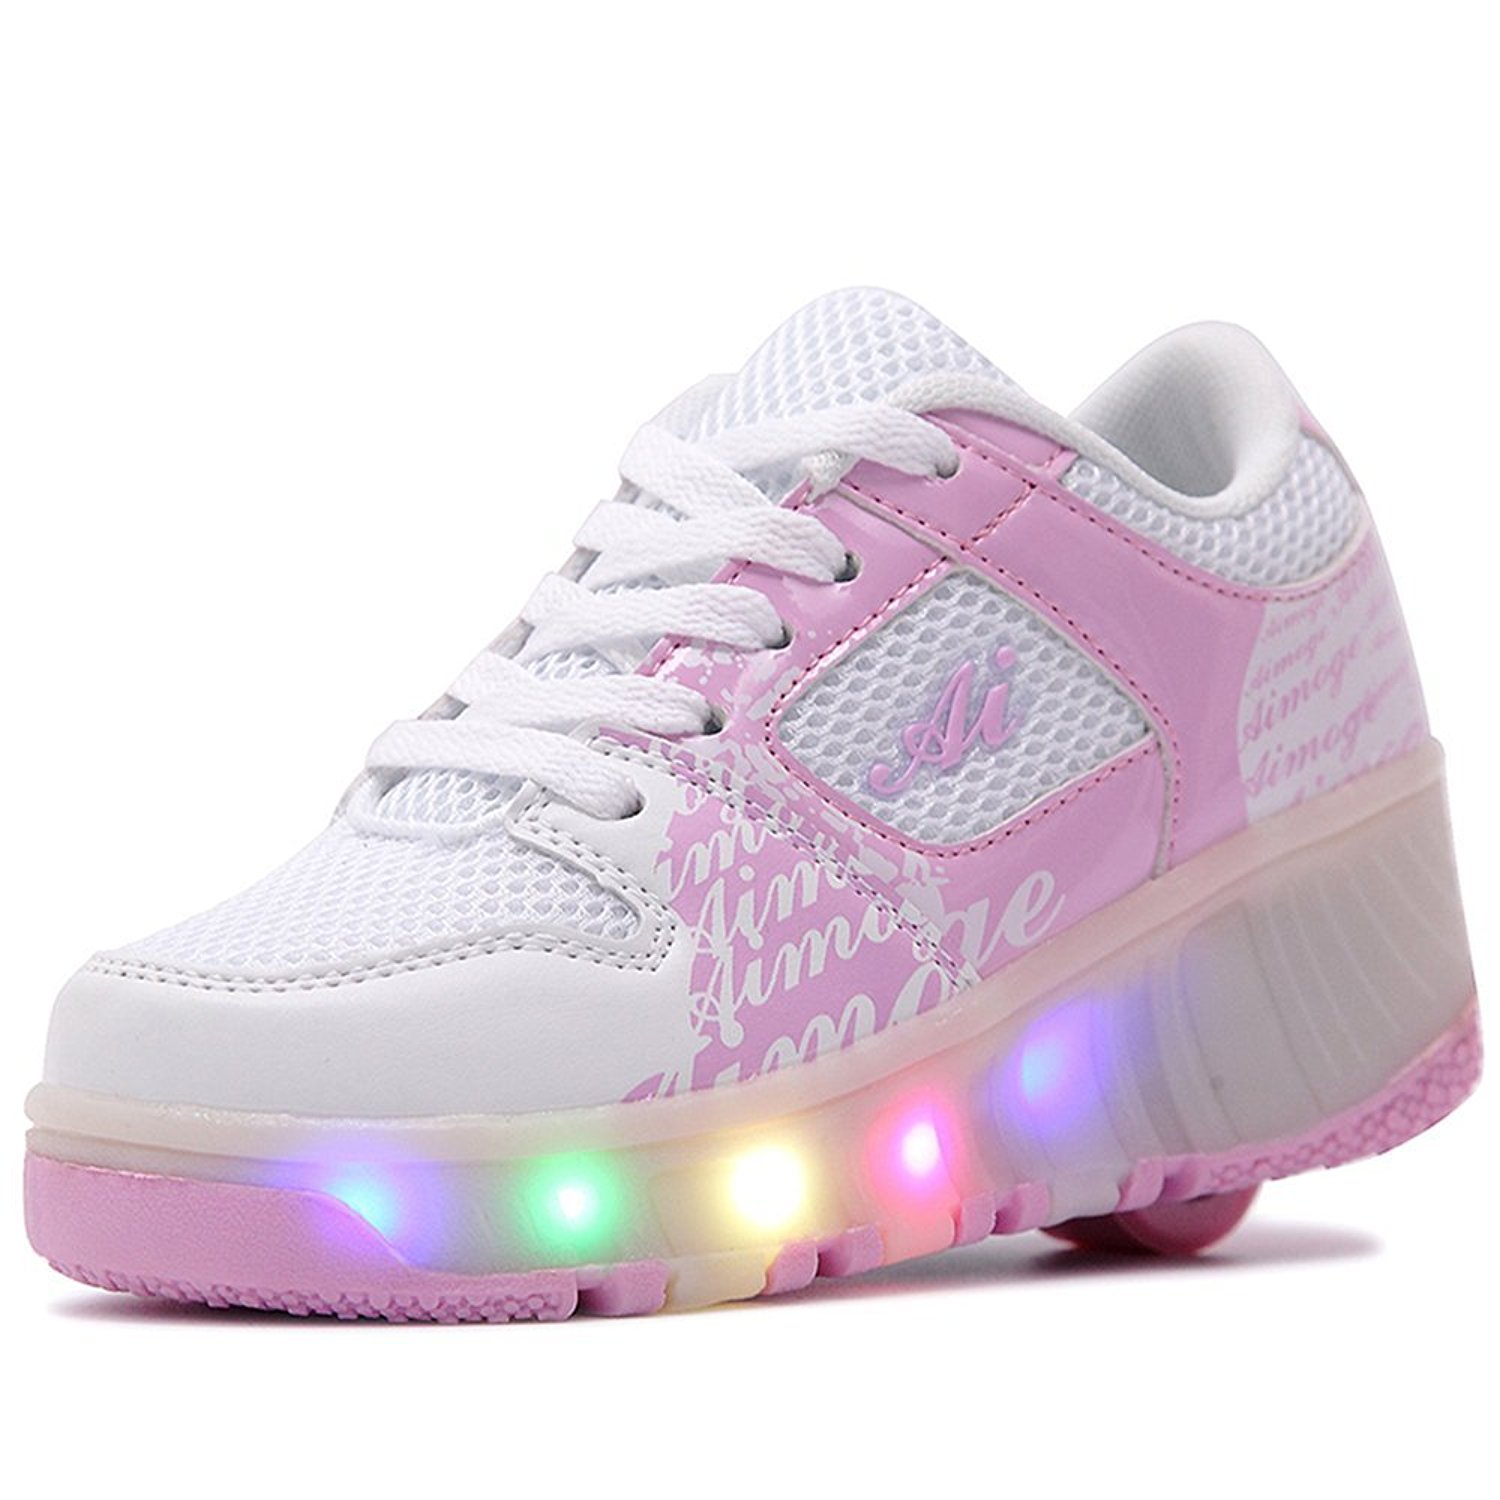 bd982a28a69dd Cheap Heely Shoes For Kids, find Heely Shoes For Kids deals on line ...